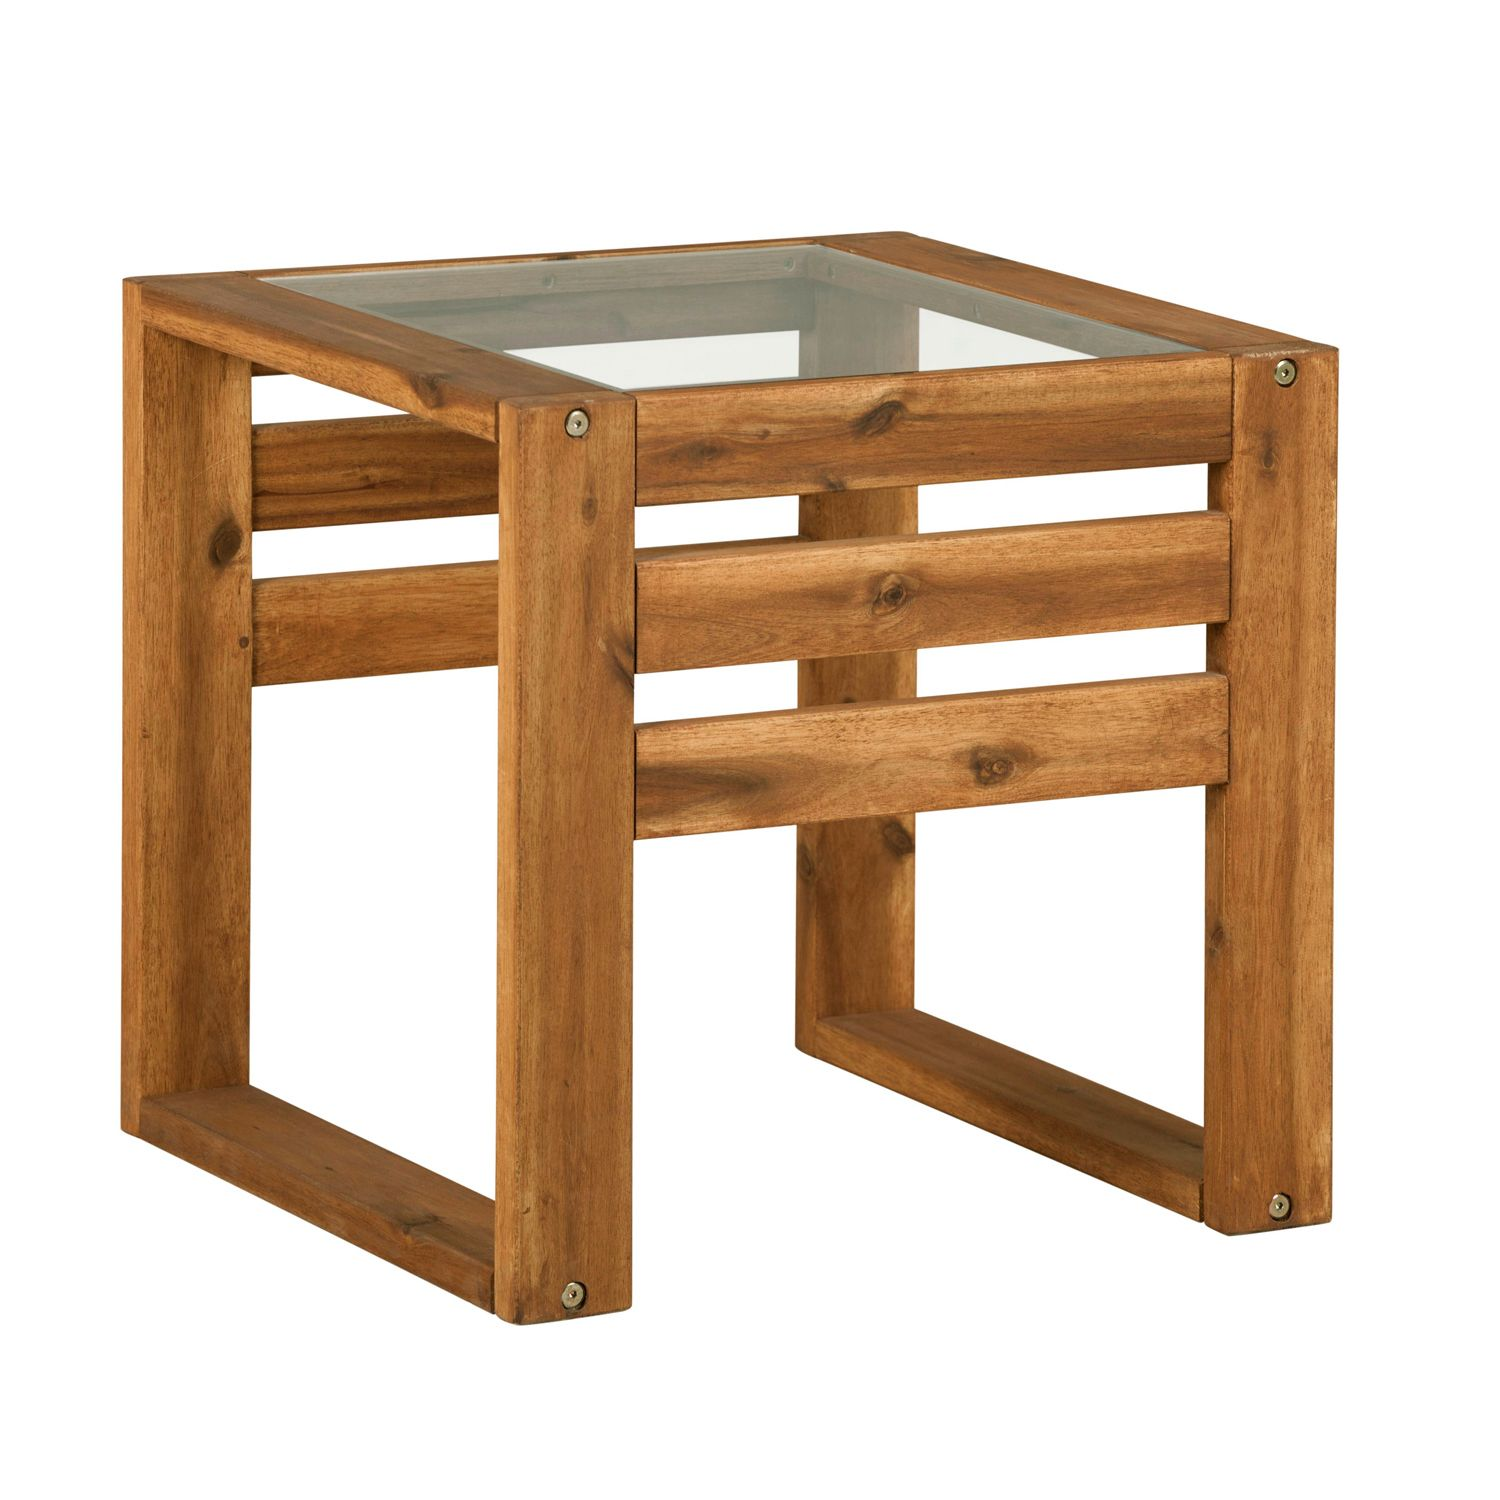 Hudson Wood Patio End Table With Glass Top Wood End Tables End Tables Glass Side Tables